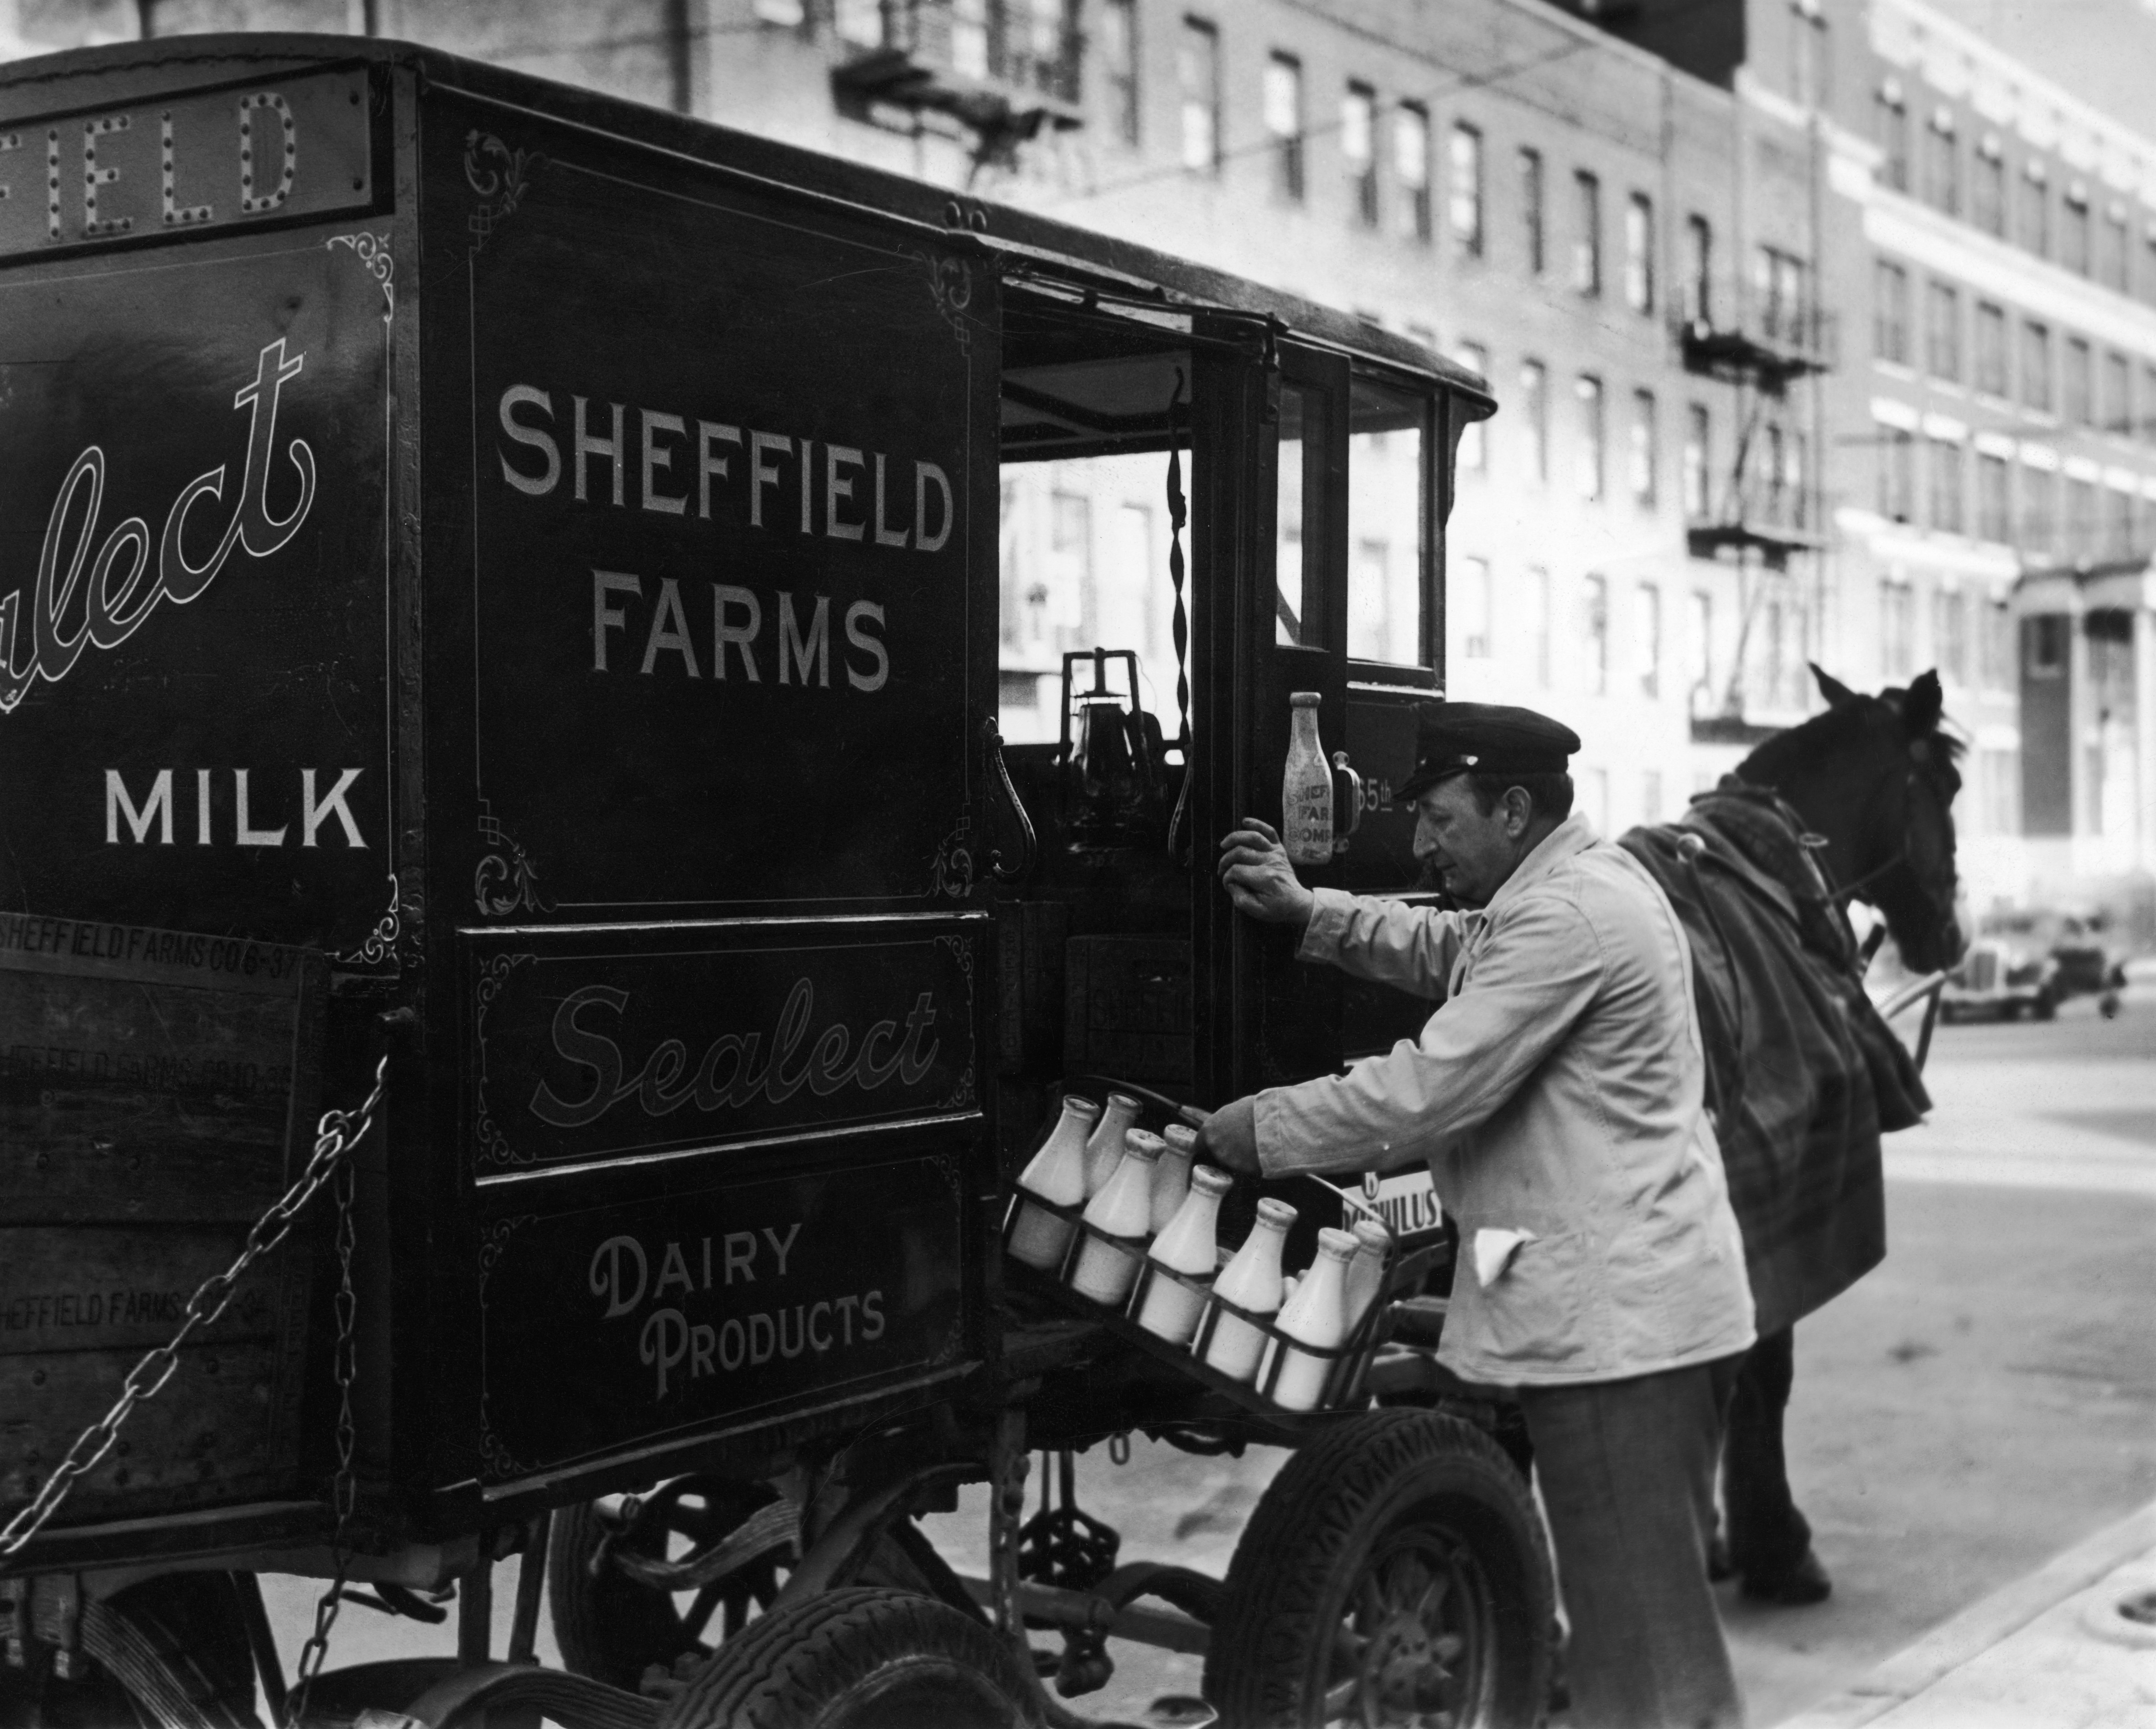 A horse-drawn making a milk delivery.